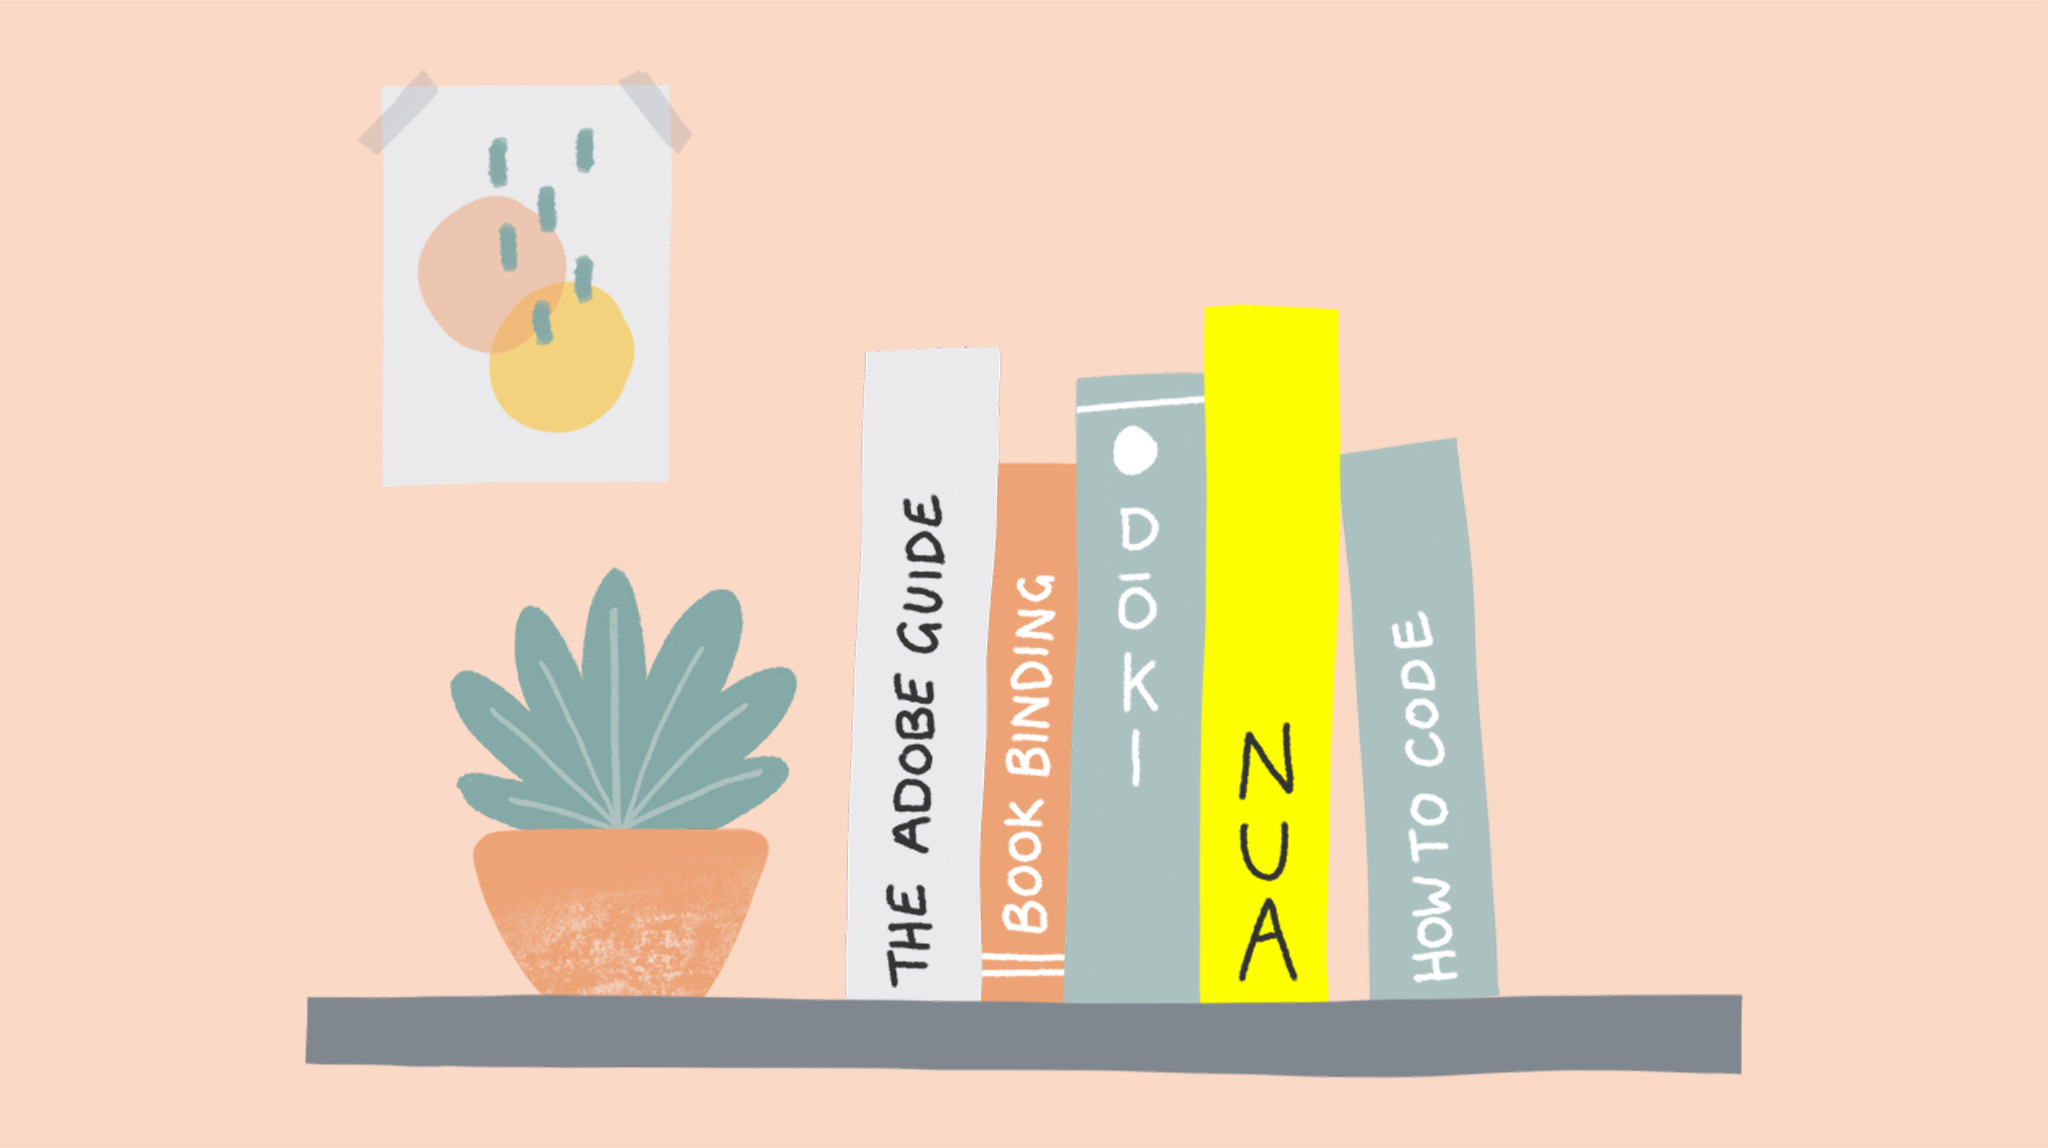 Books on a shelf illustration by MA Communication Design student Charlotte Johnston